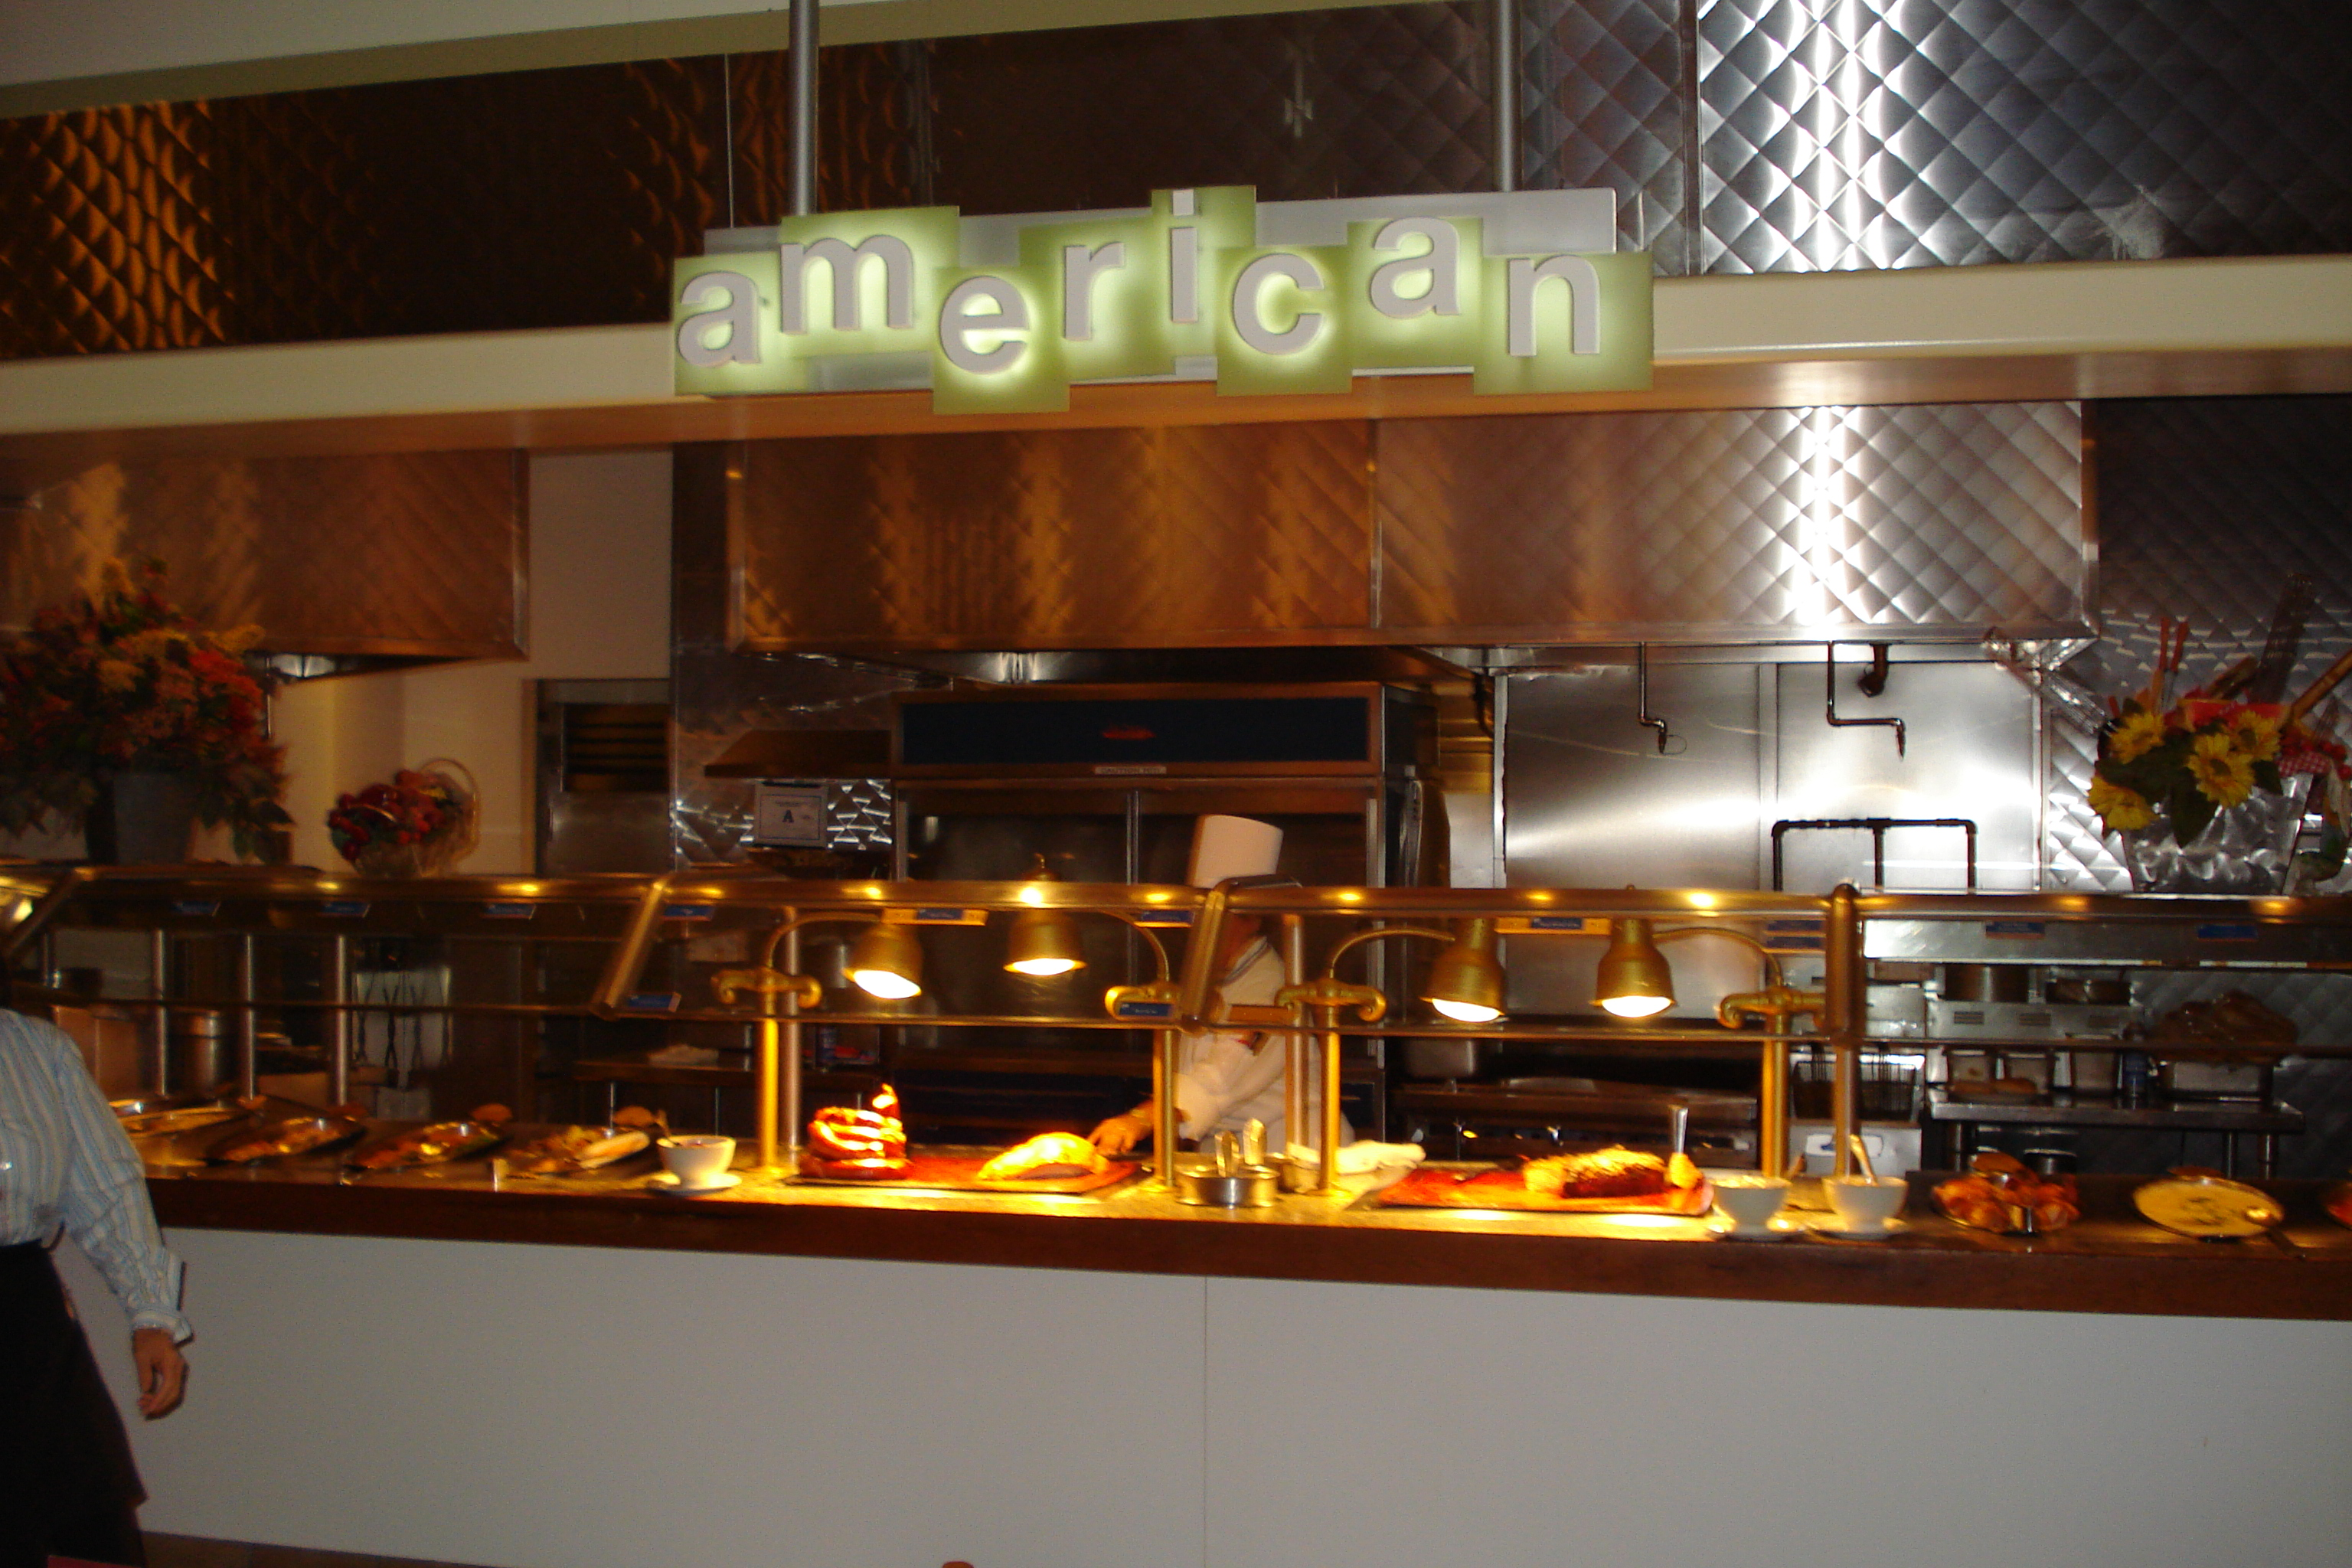 File spicemarket buffet american food jpg wikipedia for American cuisine wikipedia